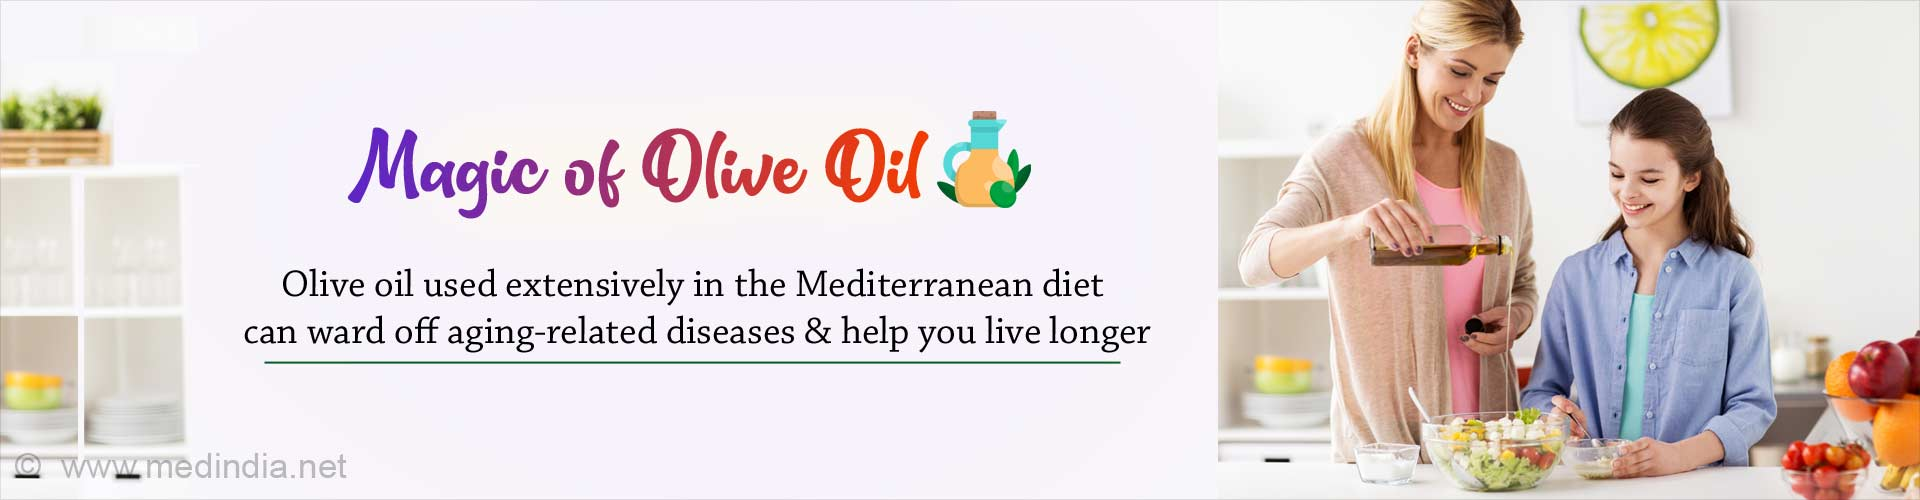 Magic of Olive Oil. Olive oil used extensively in the Mediterranean diet can ward off aging-related diseases and help you live longer.